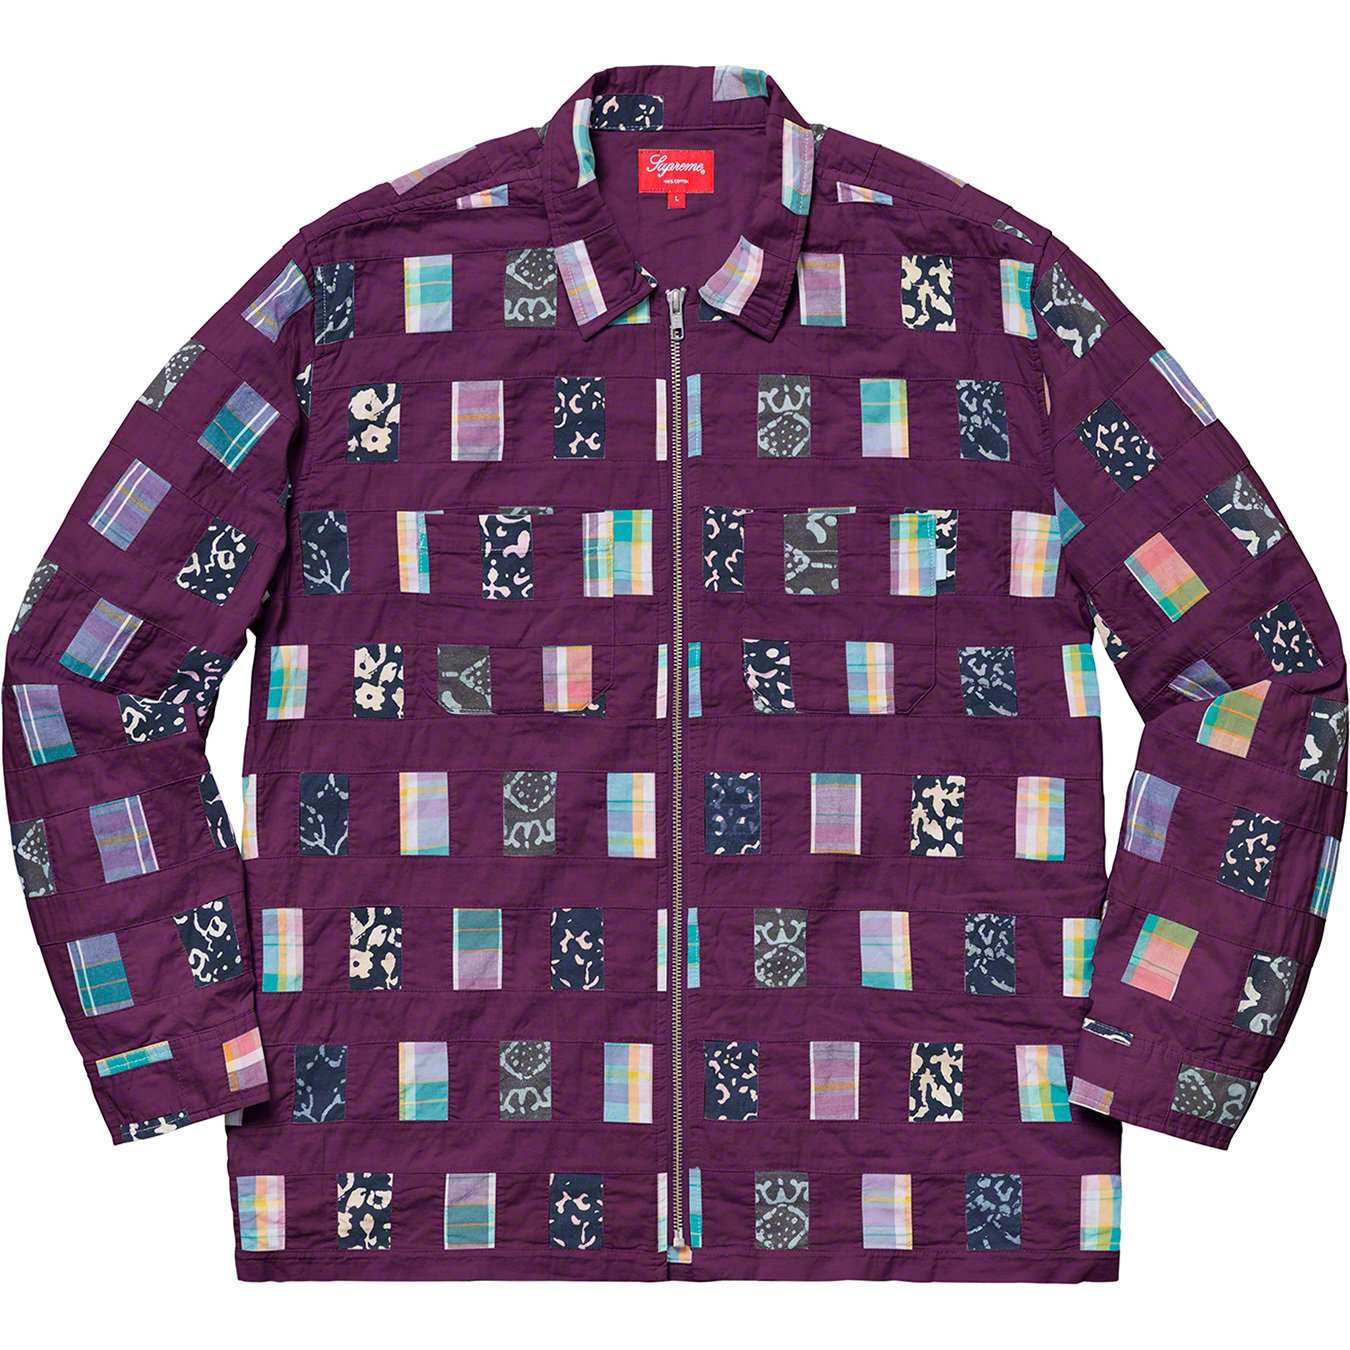 supreme-19ss-spring-summer-patchwork-zip-up-shirt